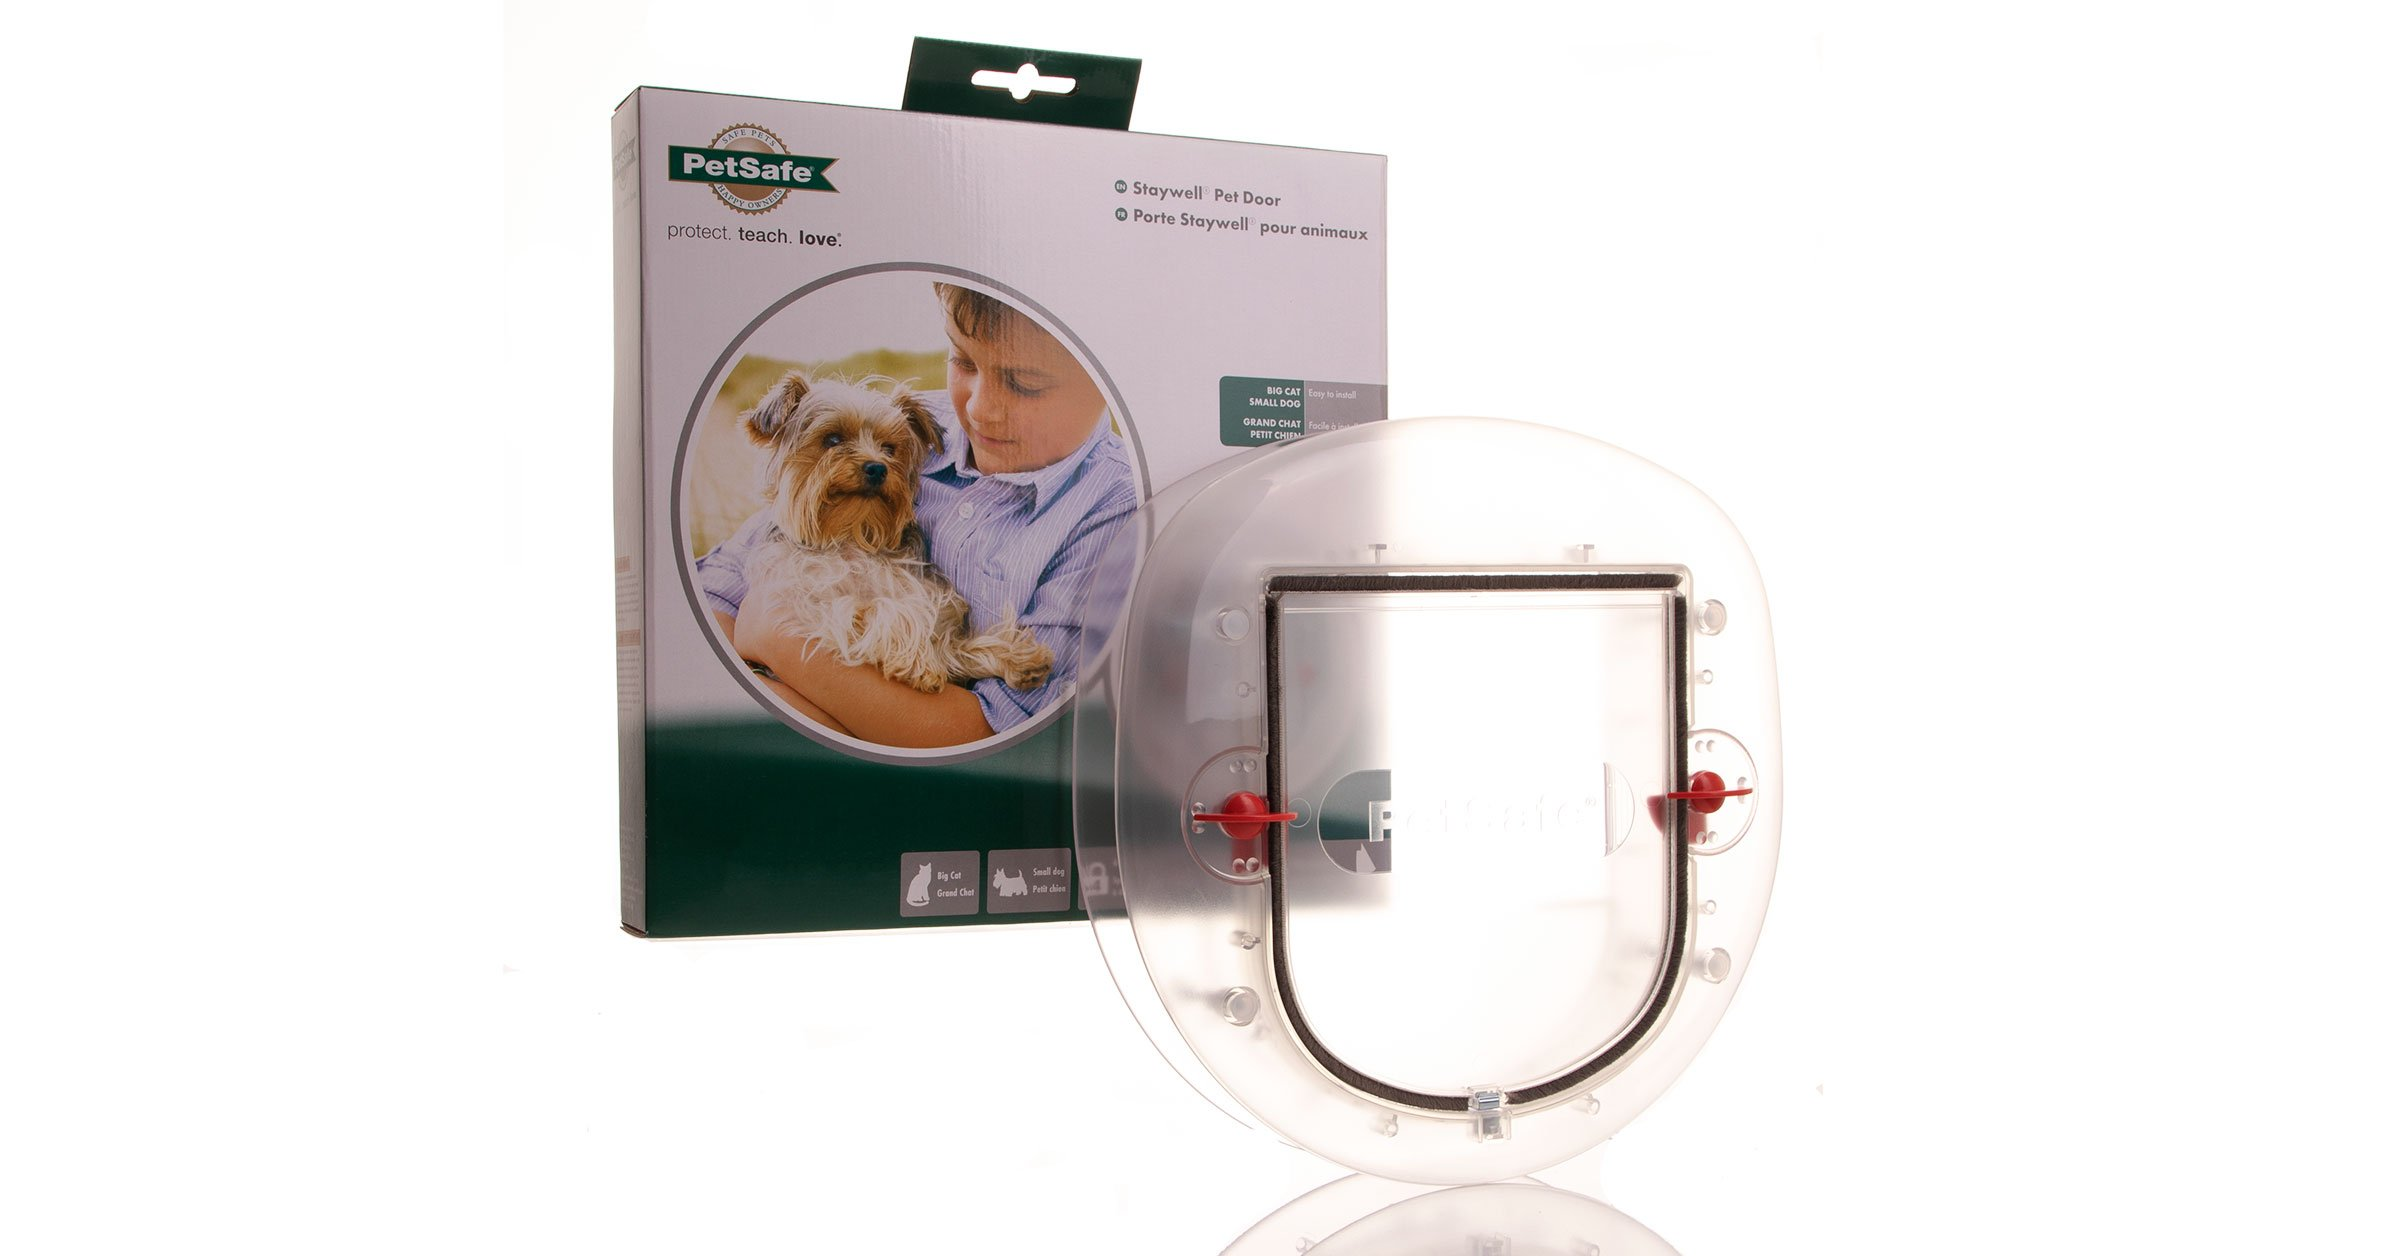 270 clear cat flap suits big cats and lots of installation options.